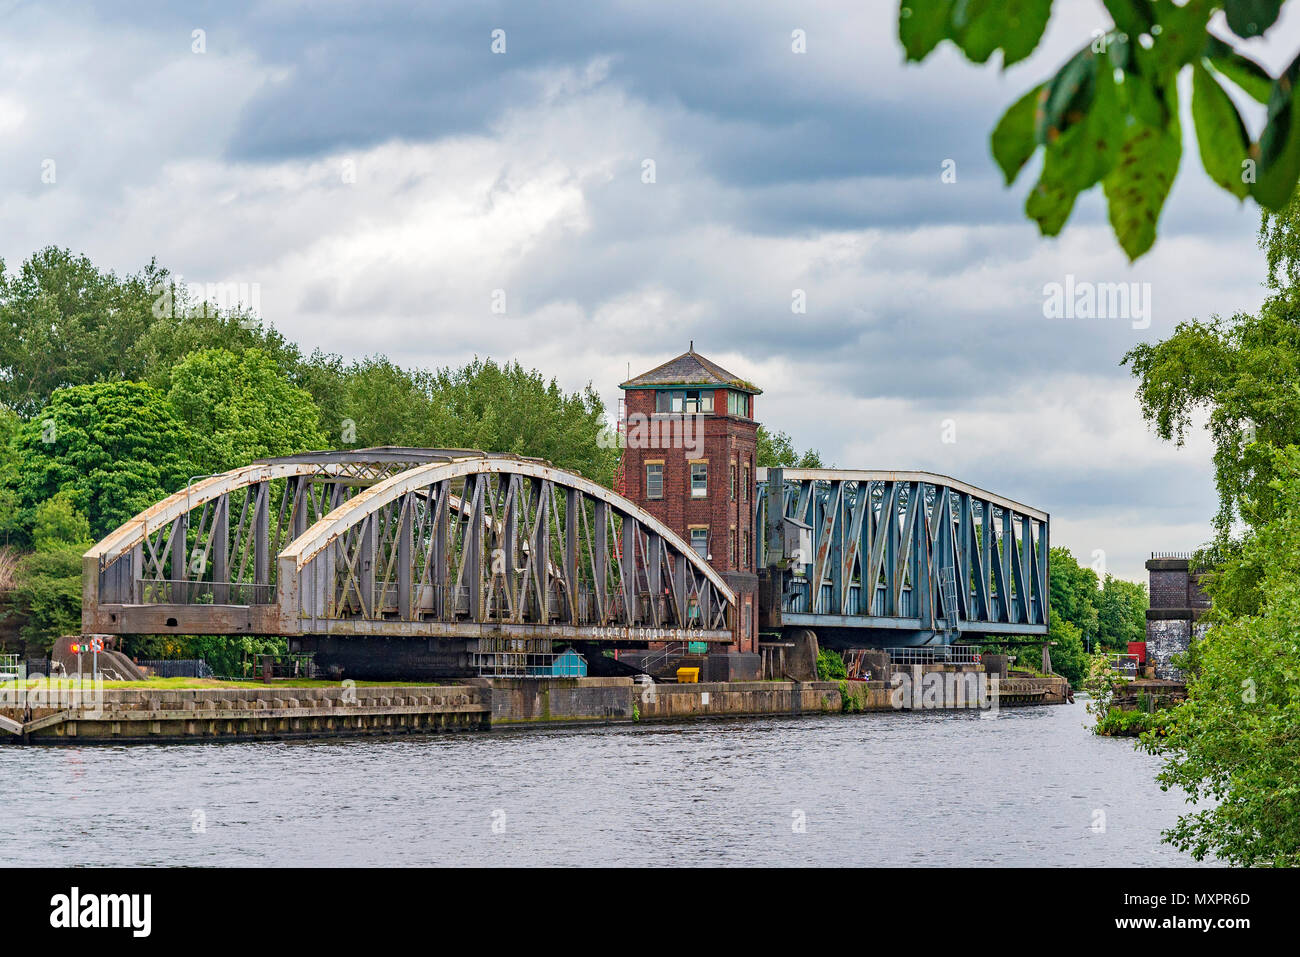 Barton road bridge and aqueduct on the Manchester Ship Canal. - Stock Image